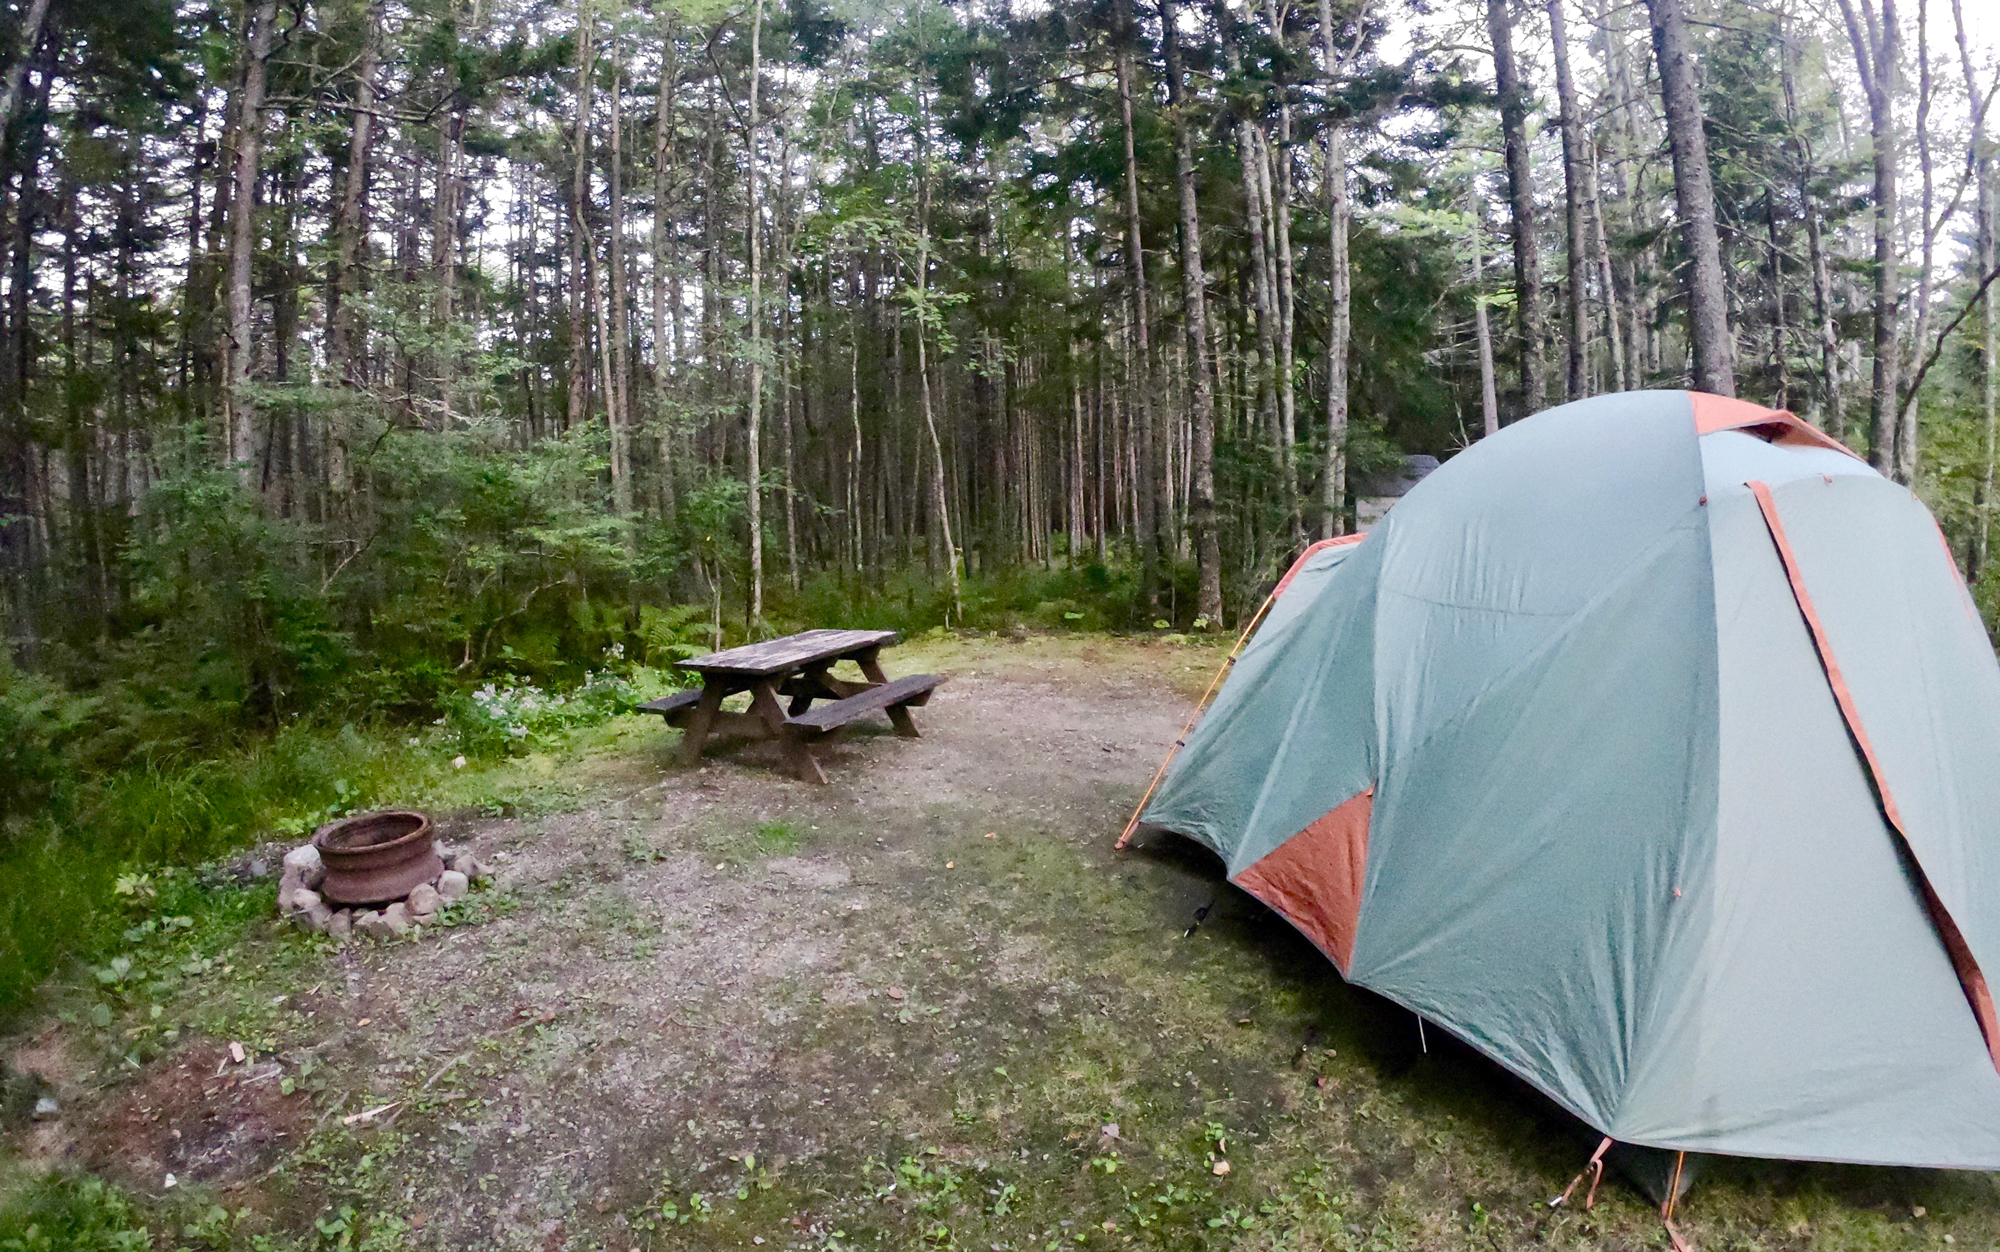 green tent, picnic table, and fire ring on spacious, wooded campsite at Sherwood Forest Campite & Cabins in Maine